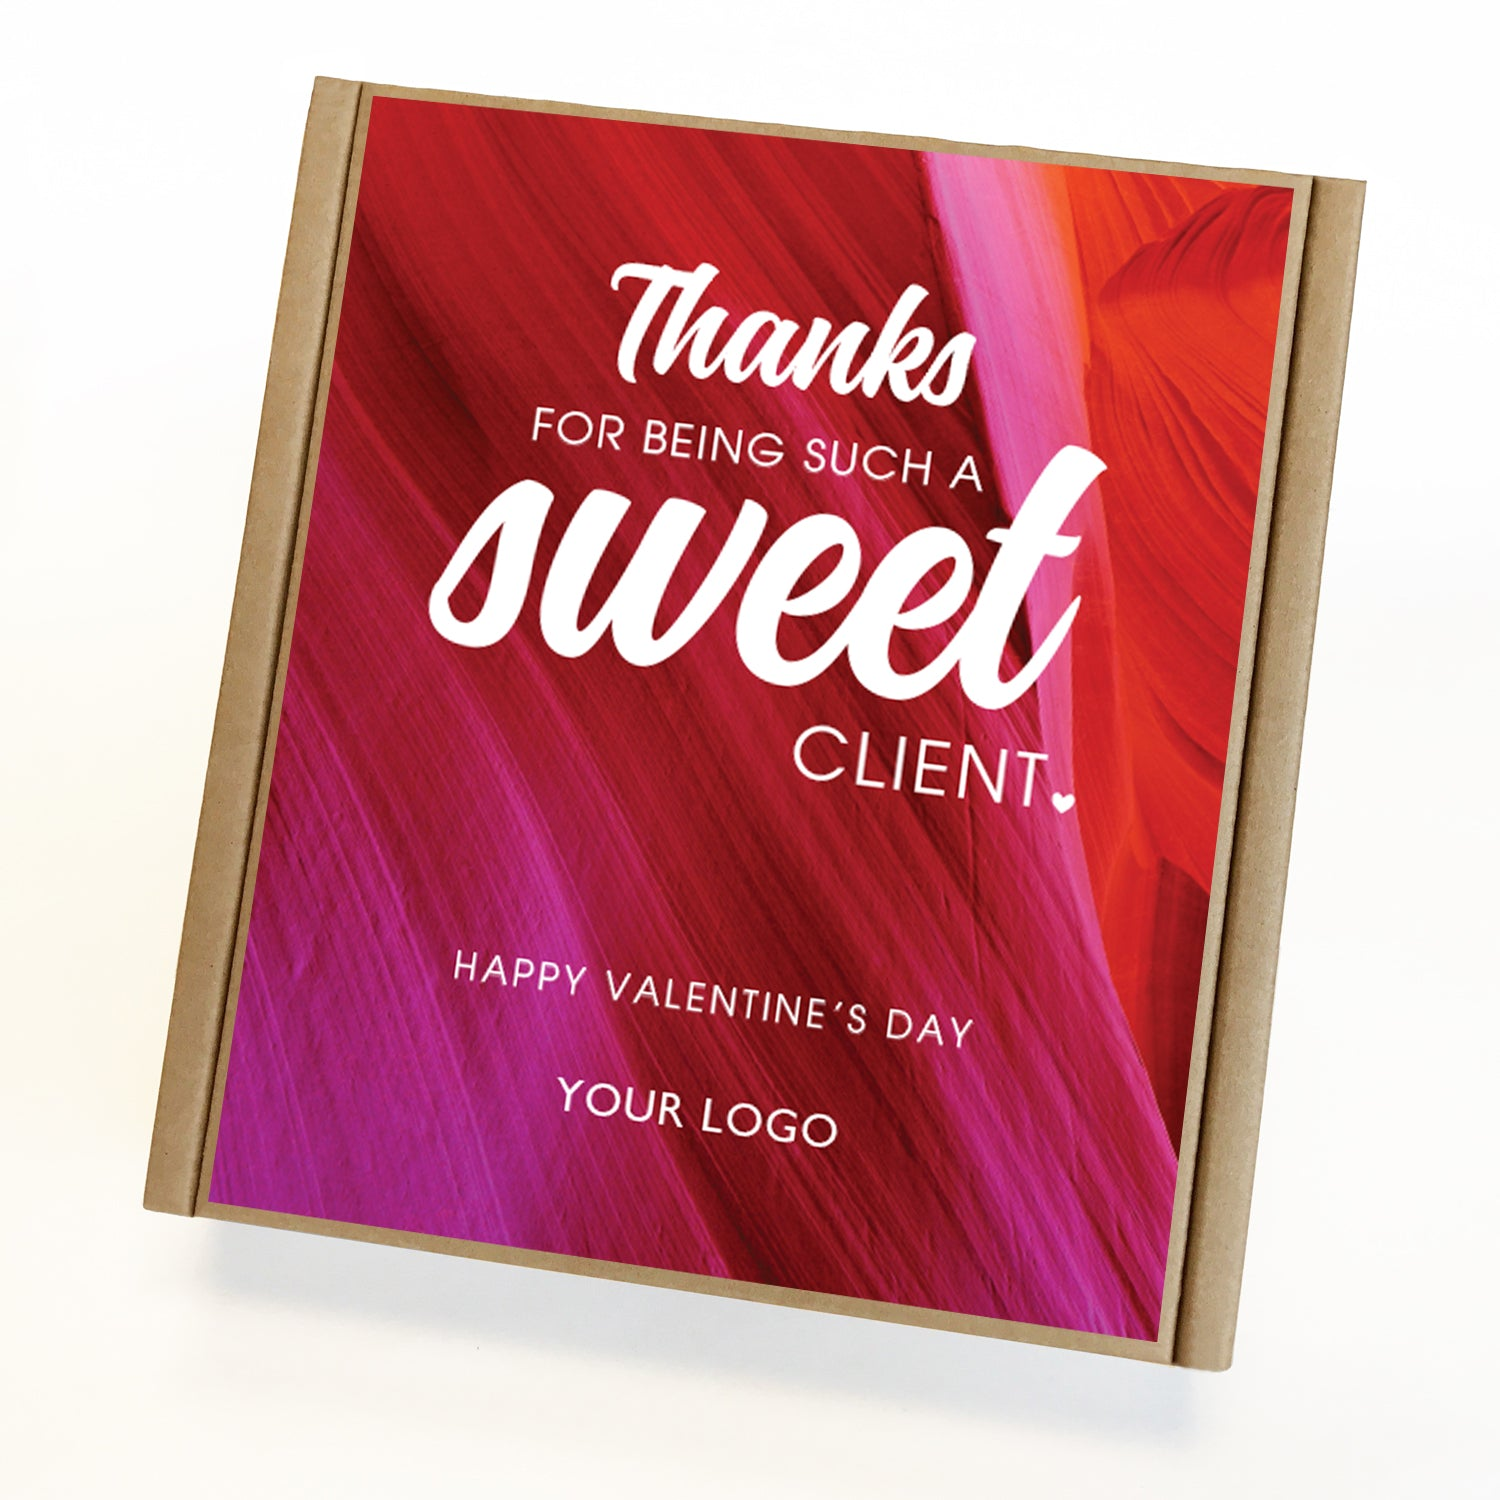 Sweet Client Valentine Caramel Eco Gift Box